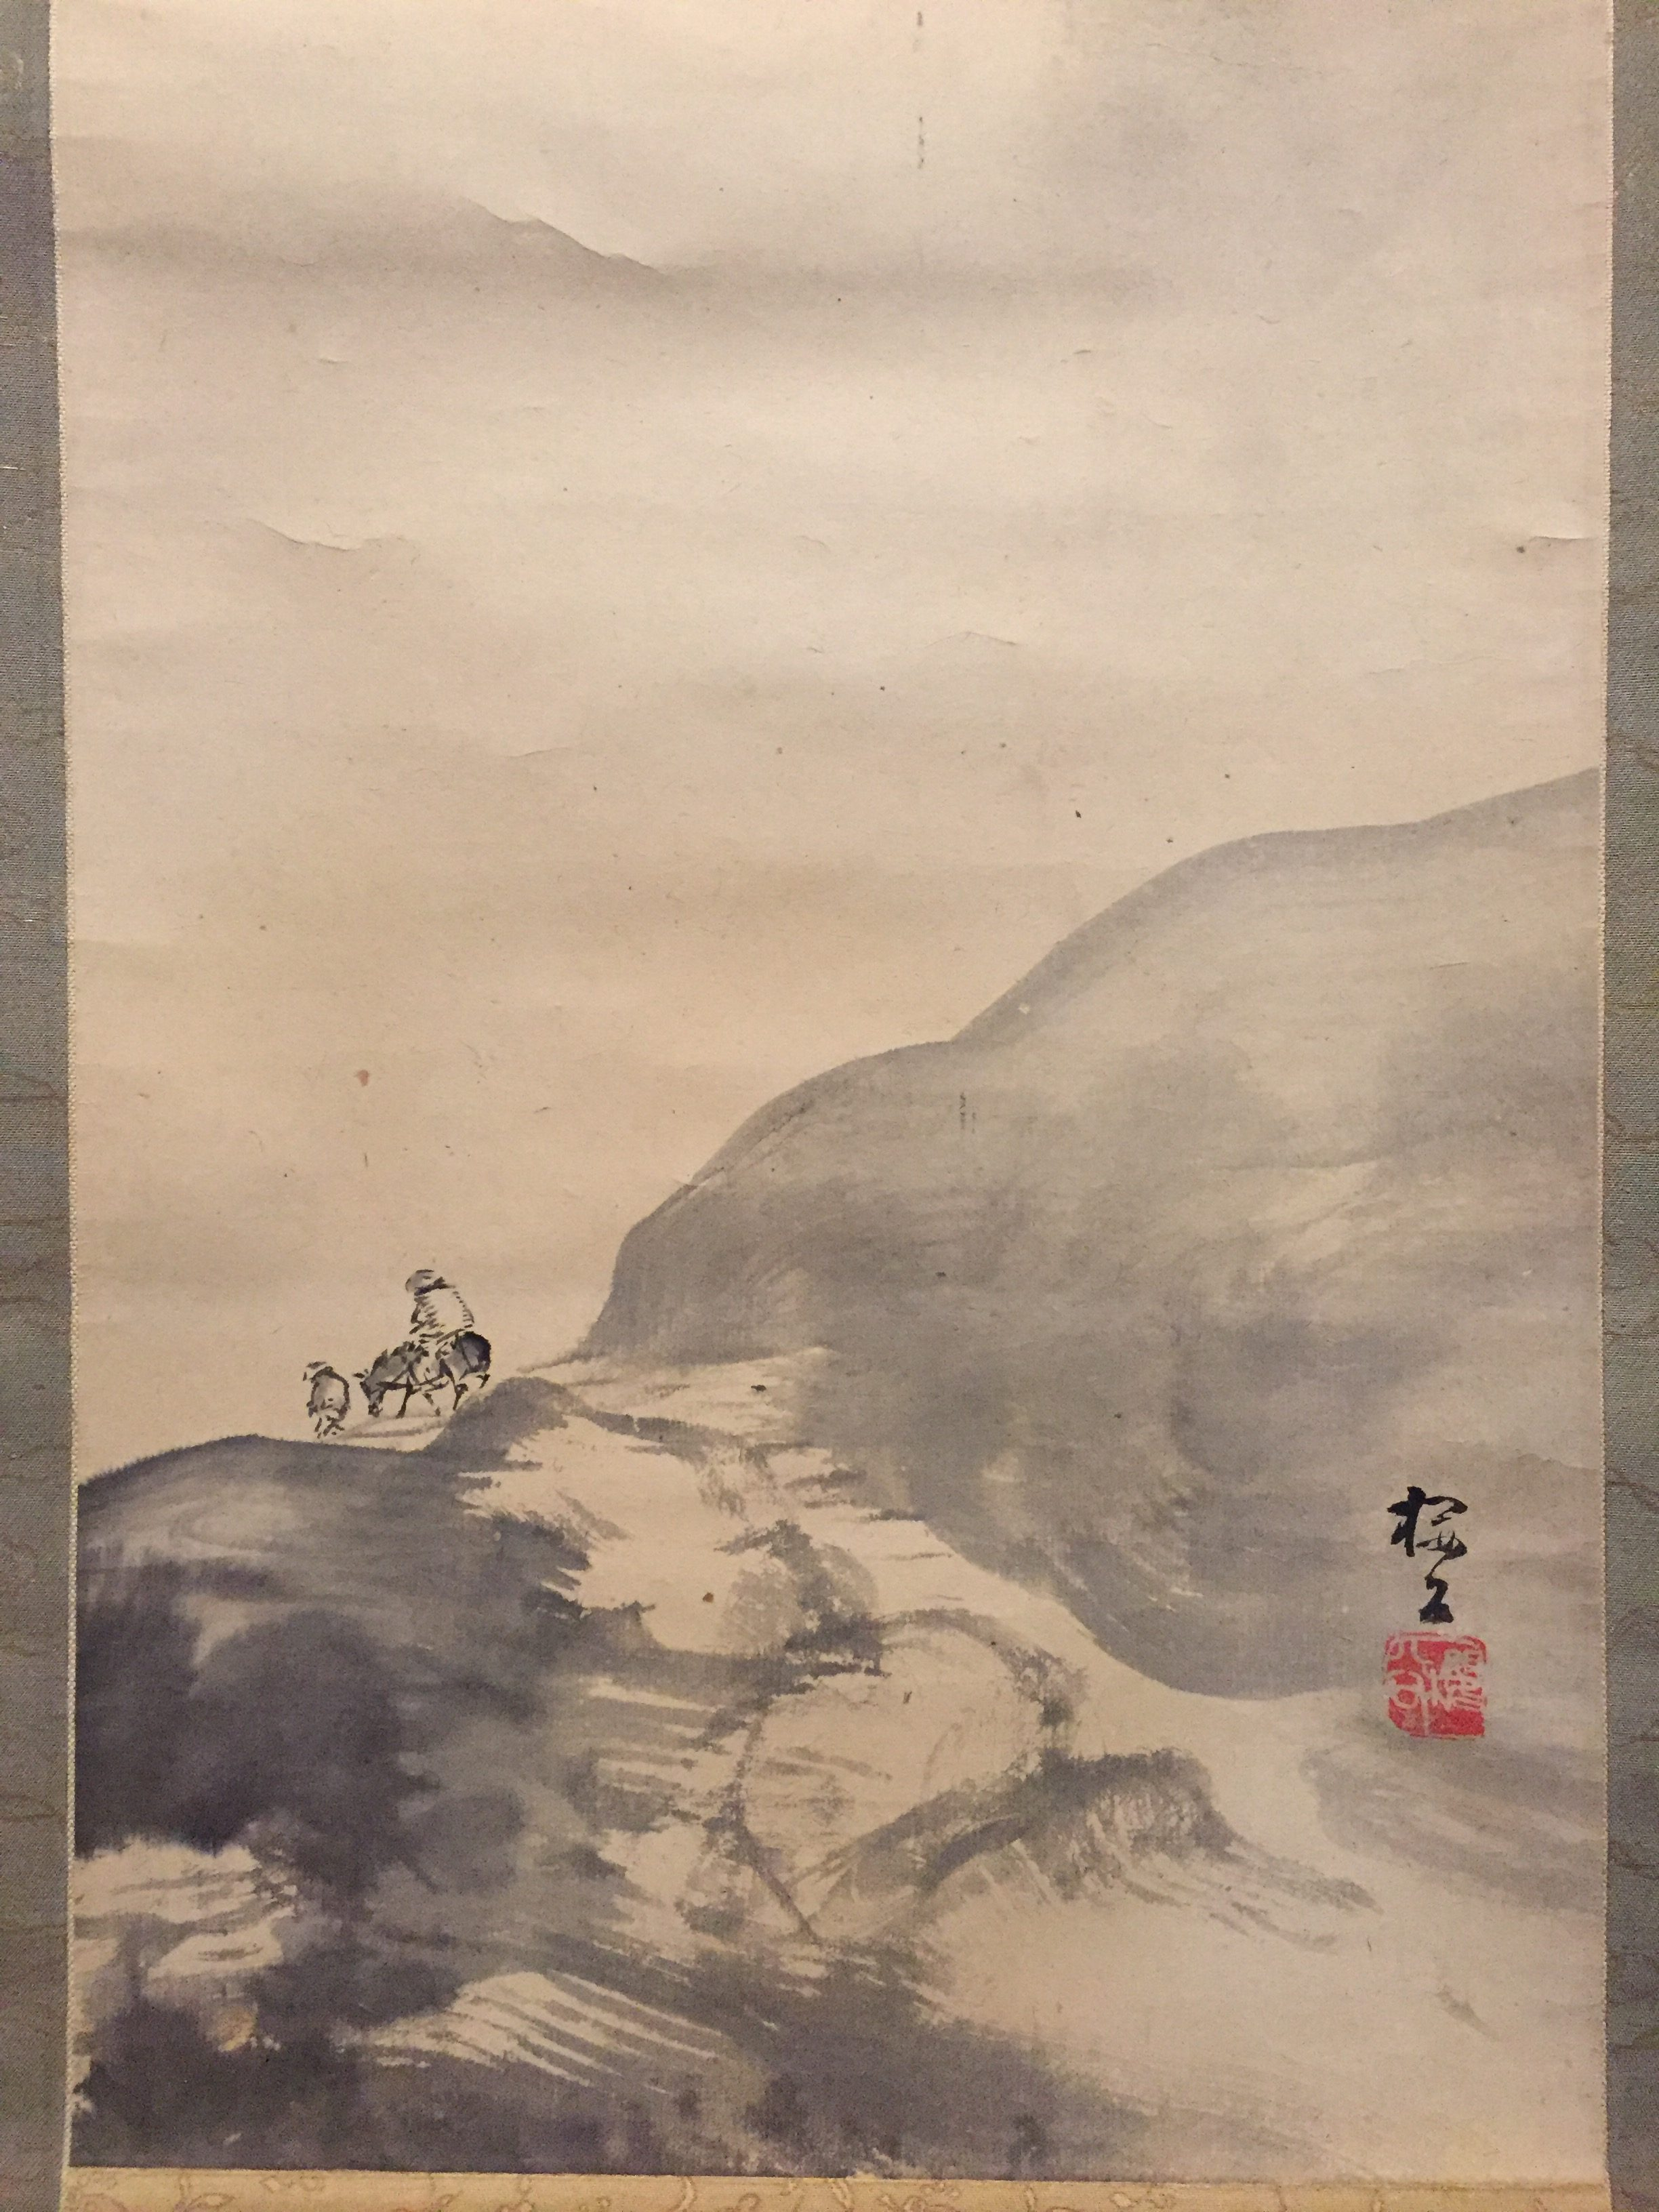 A figure crosses over a hill on a horse pulled by a servant, with Mt. Fuji appearing above the clouds in the background. This work, painted only in black, expresses a sense of perspective through using shades of just that one colour.